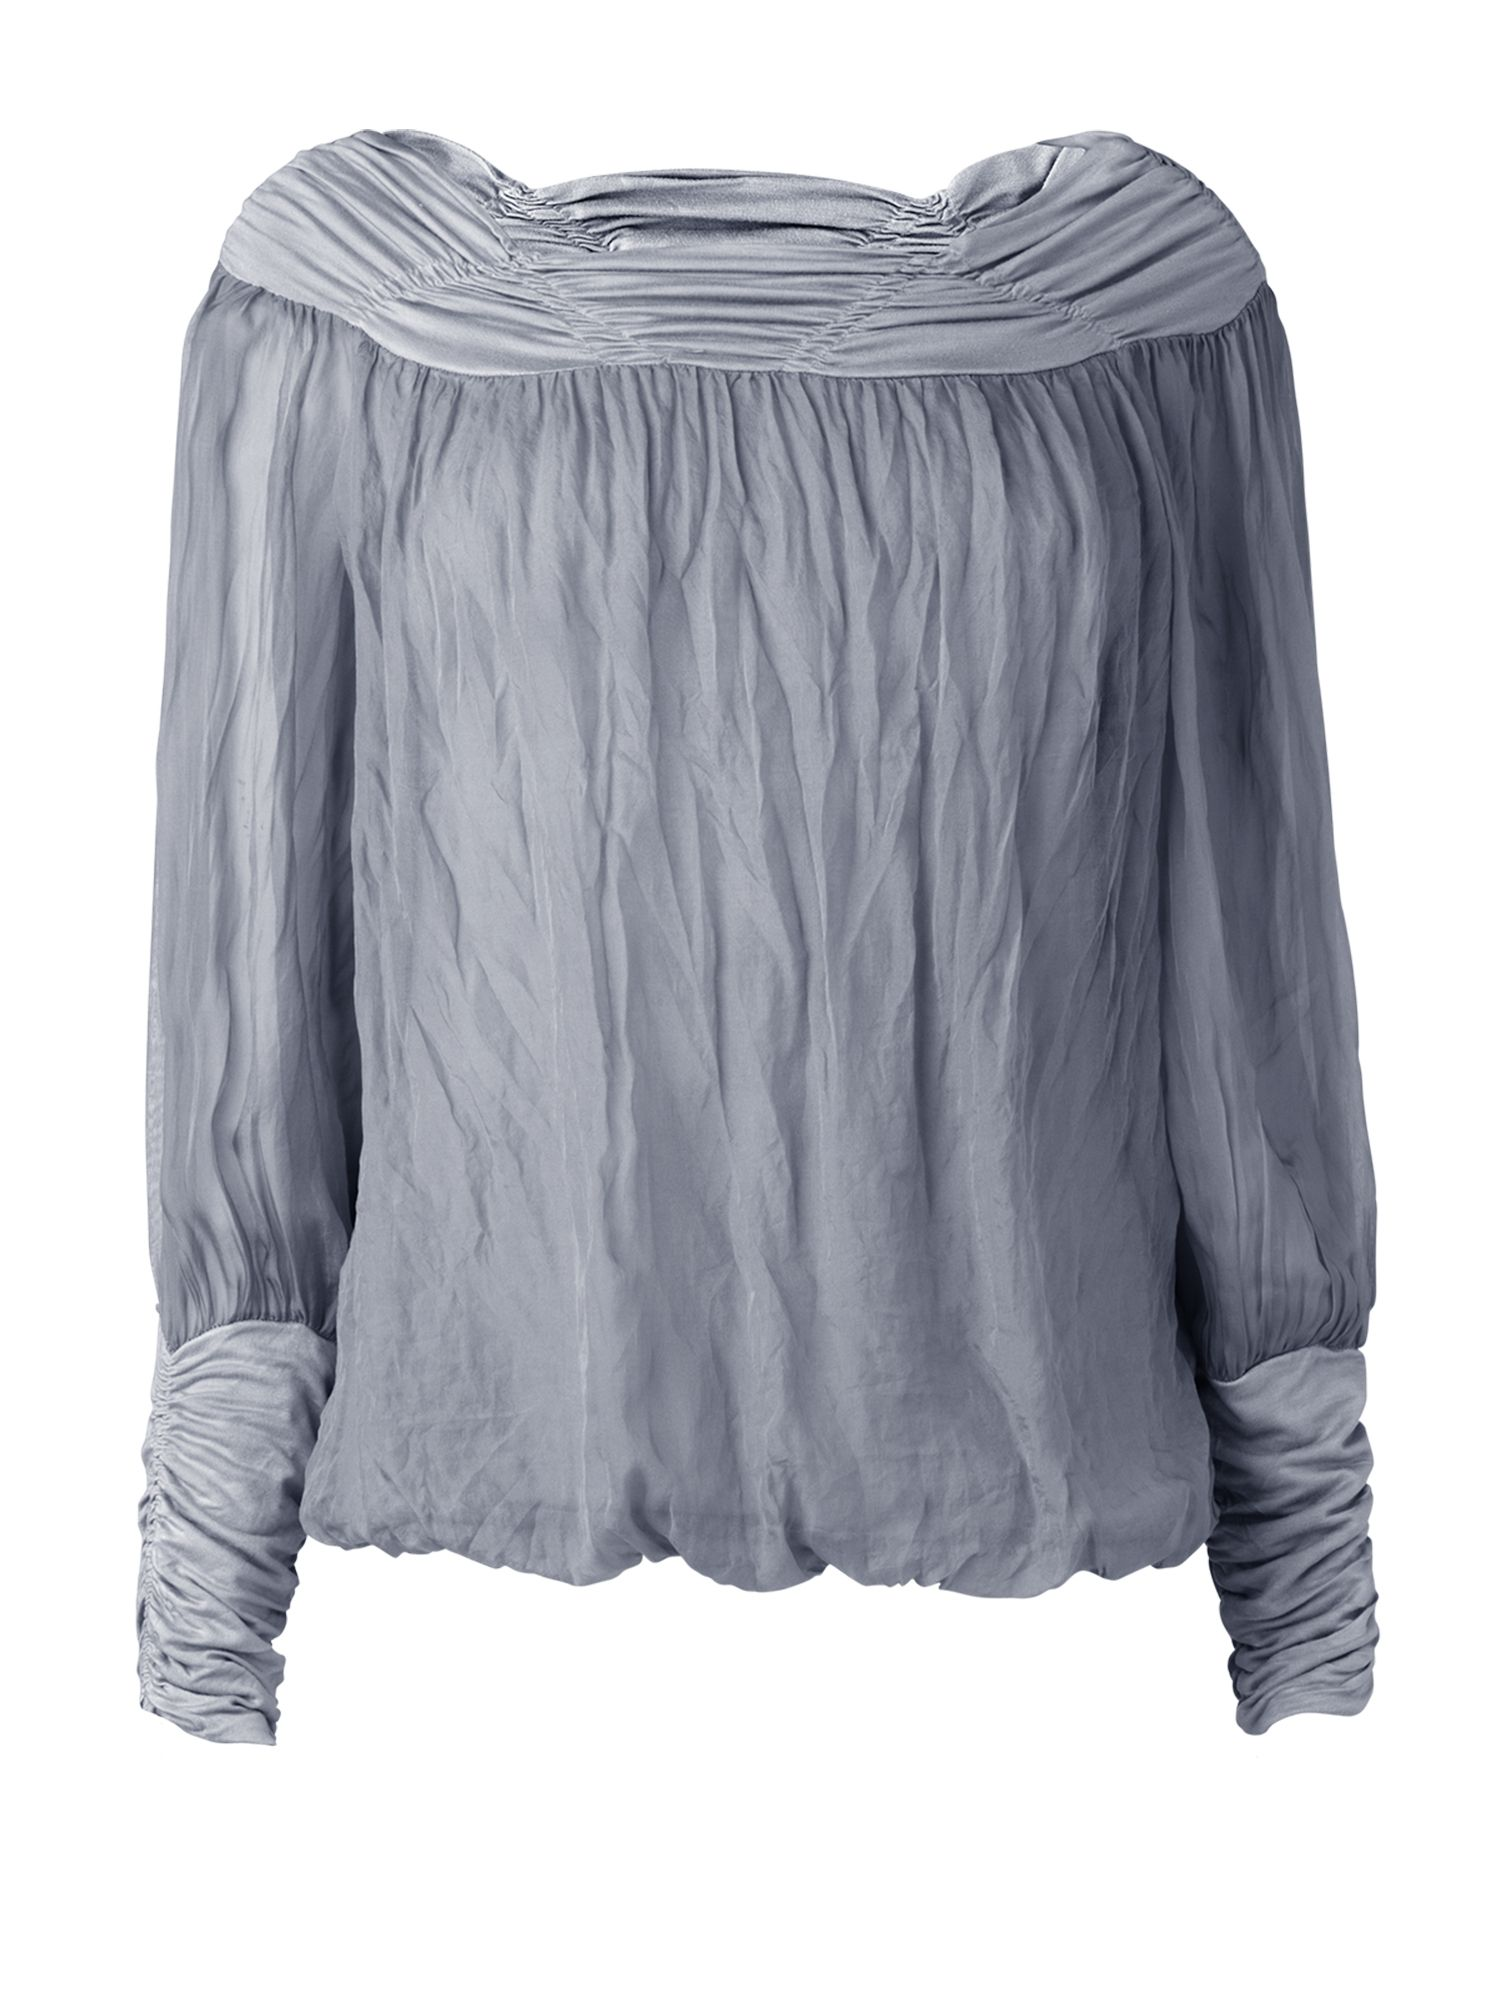 Phase Eight Womens Phase Eight Gypsy silk blouse, Blue product image